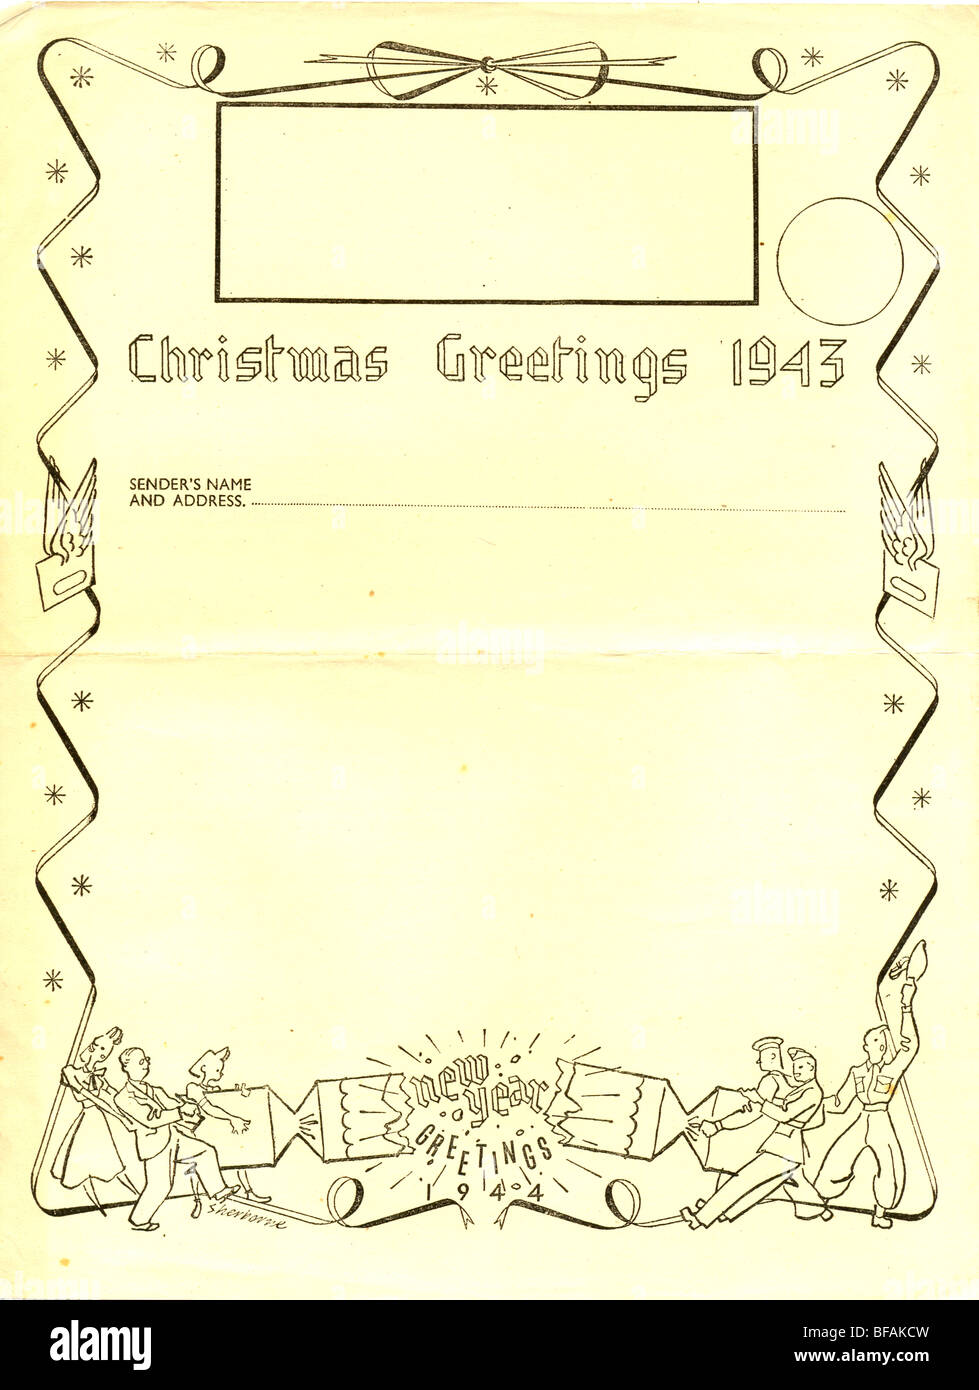 Post Office Christmas Airgraph form 1943 - Stock Image